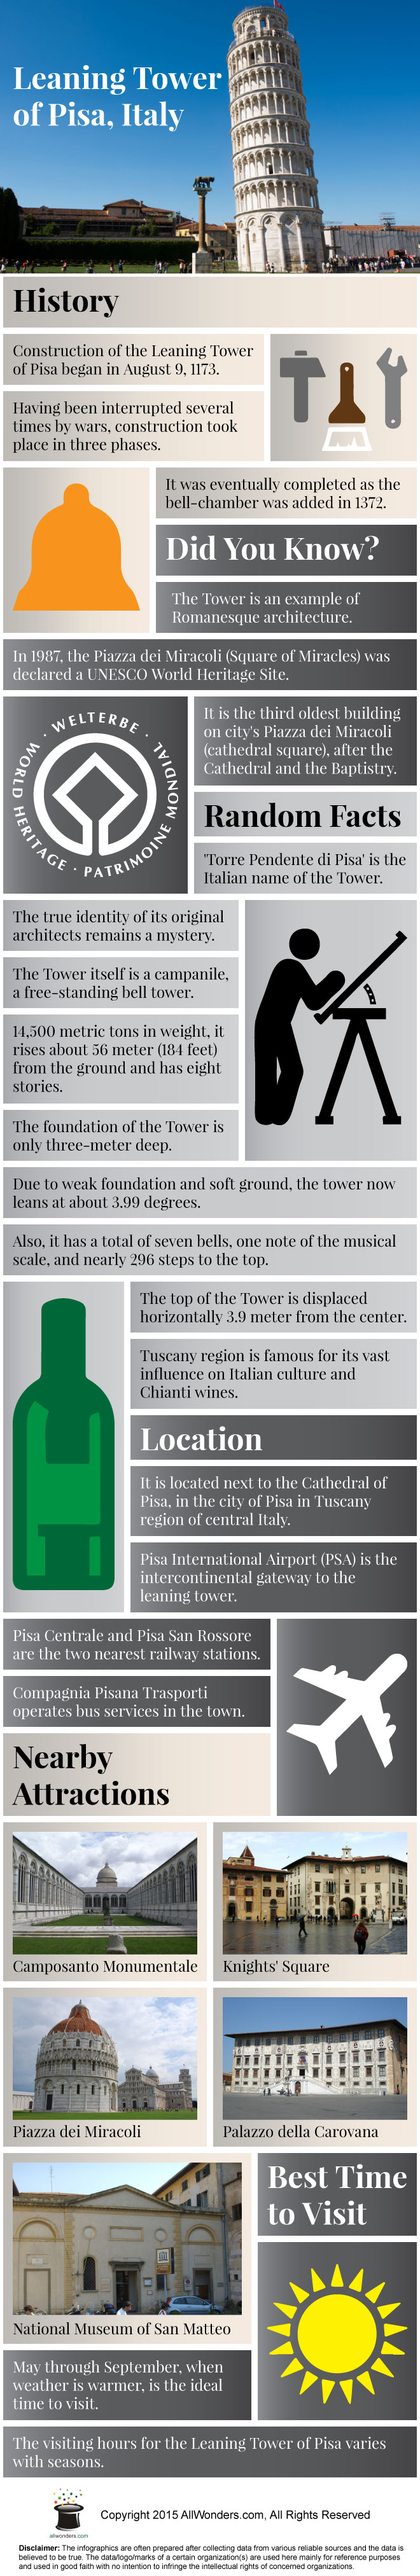 Leaning Tower Of Pisa Infographic